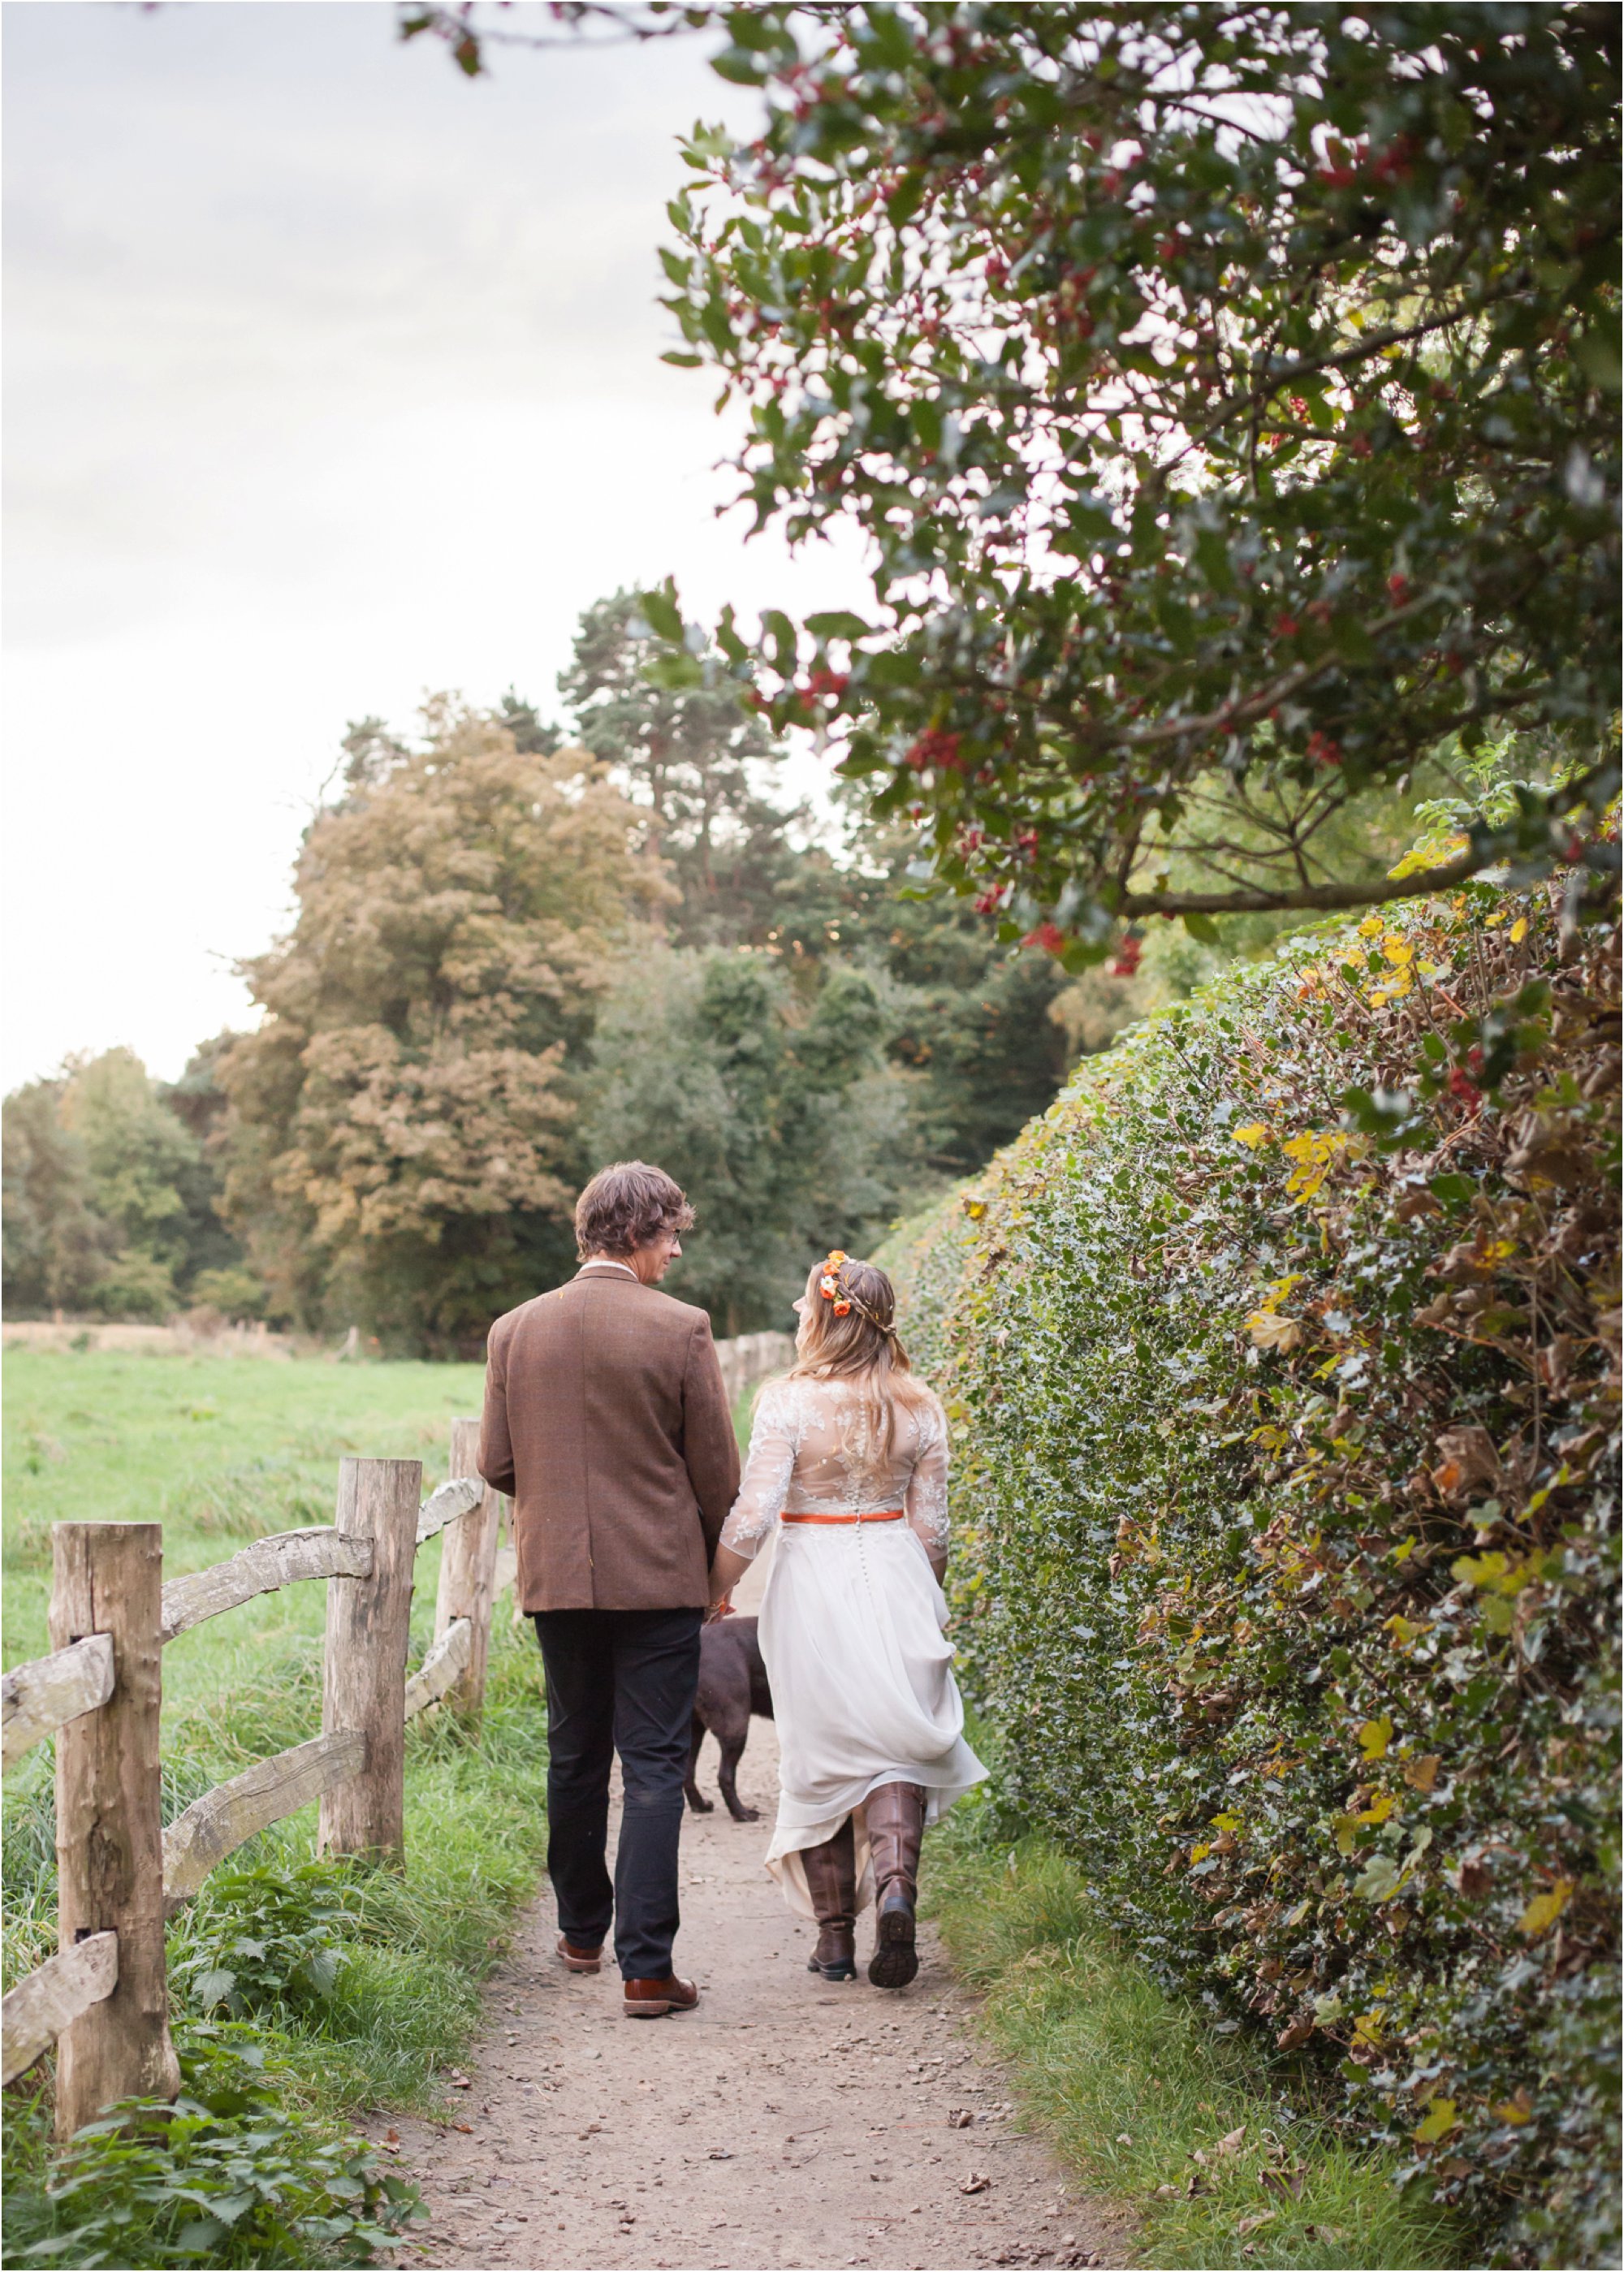 Styal_Wedding_Wilmslow_Cheshire_Autumn_Colourful_photography_0106.jpg